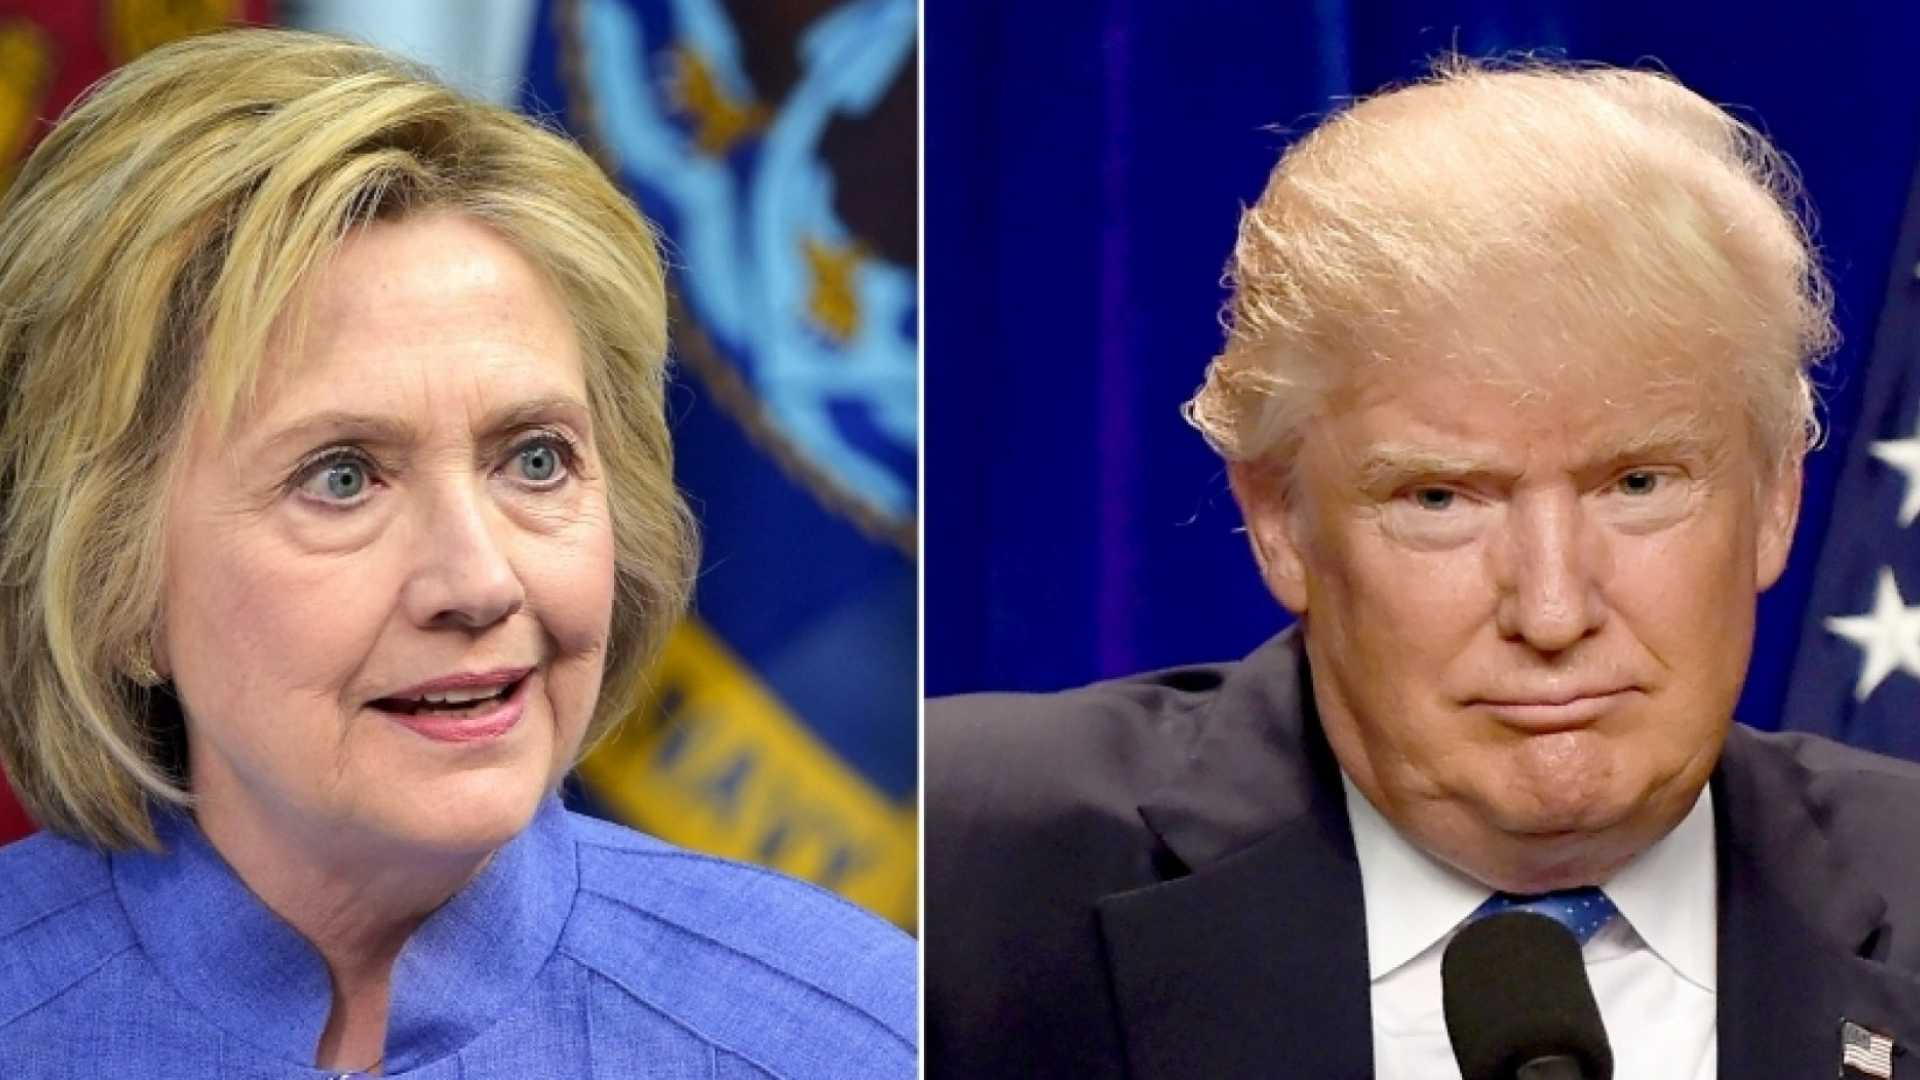 Trump vs. Clinton: How the 2016 Election Could Impact Small Business